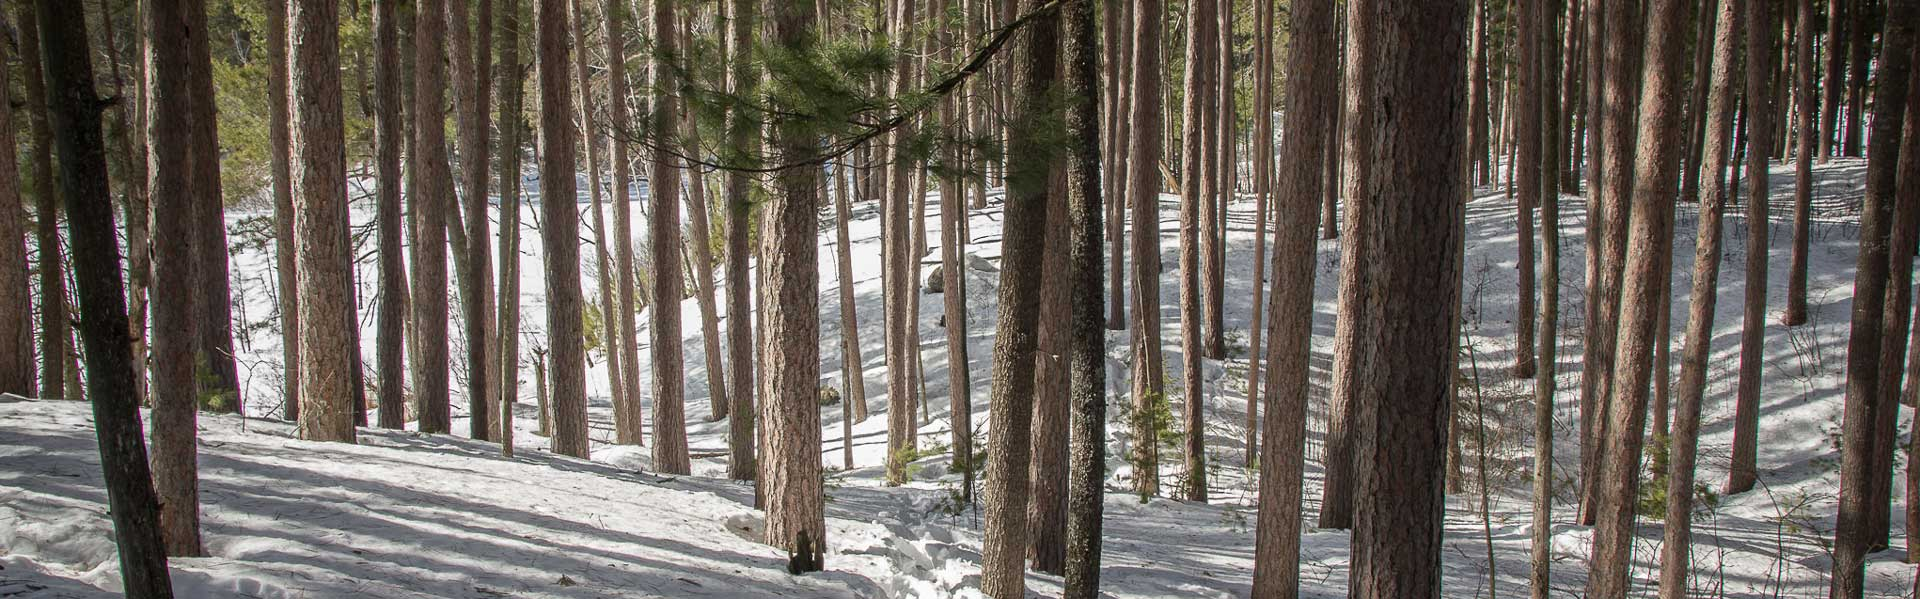 Snowy pines by Brett Whaley via Flickr CC